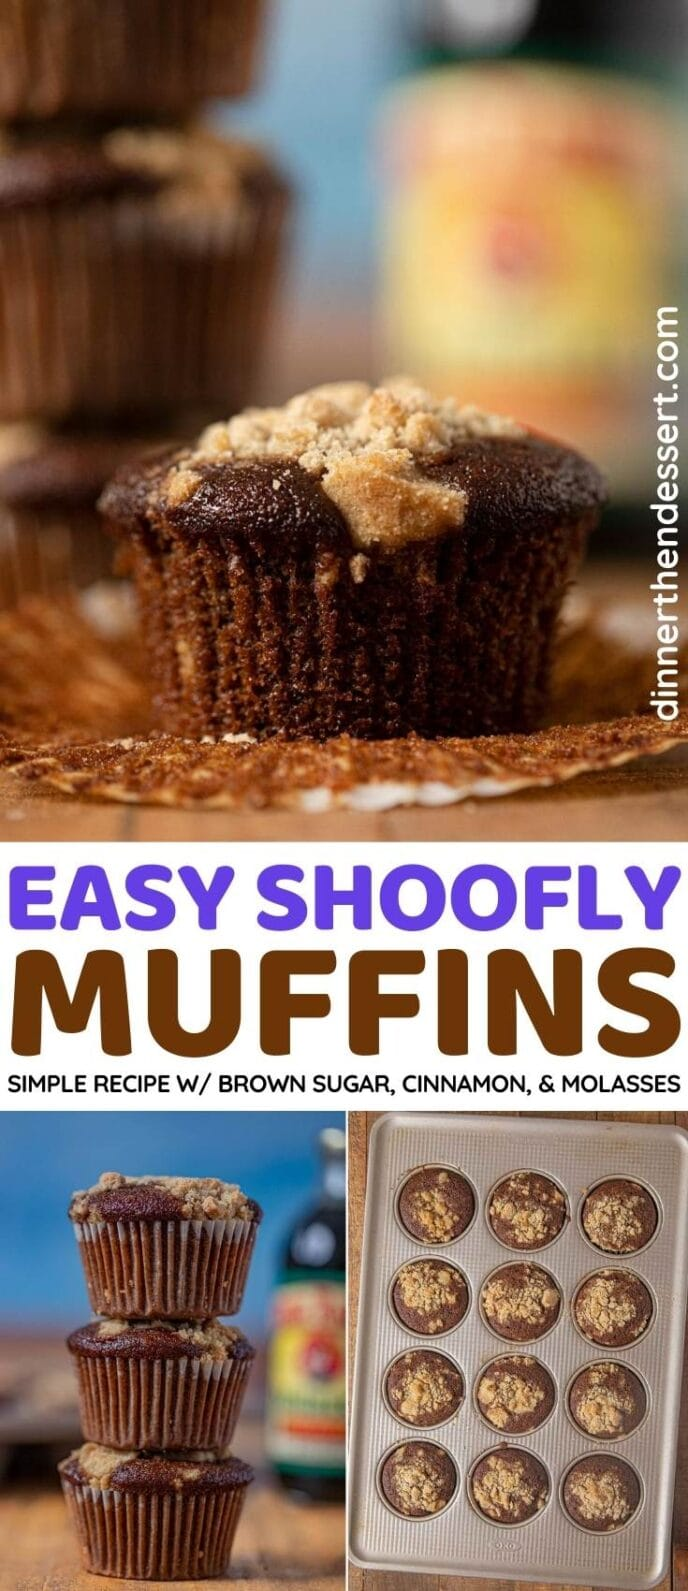 Shoofly Muffins collage